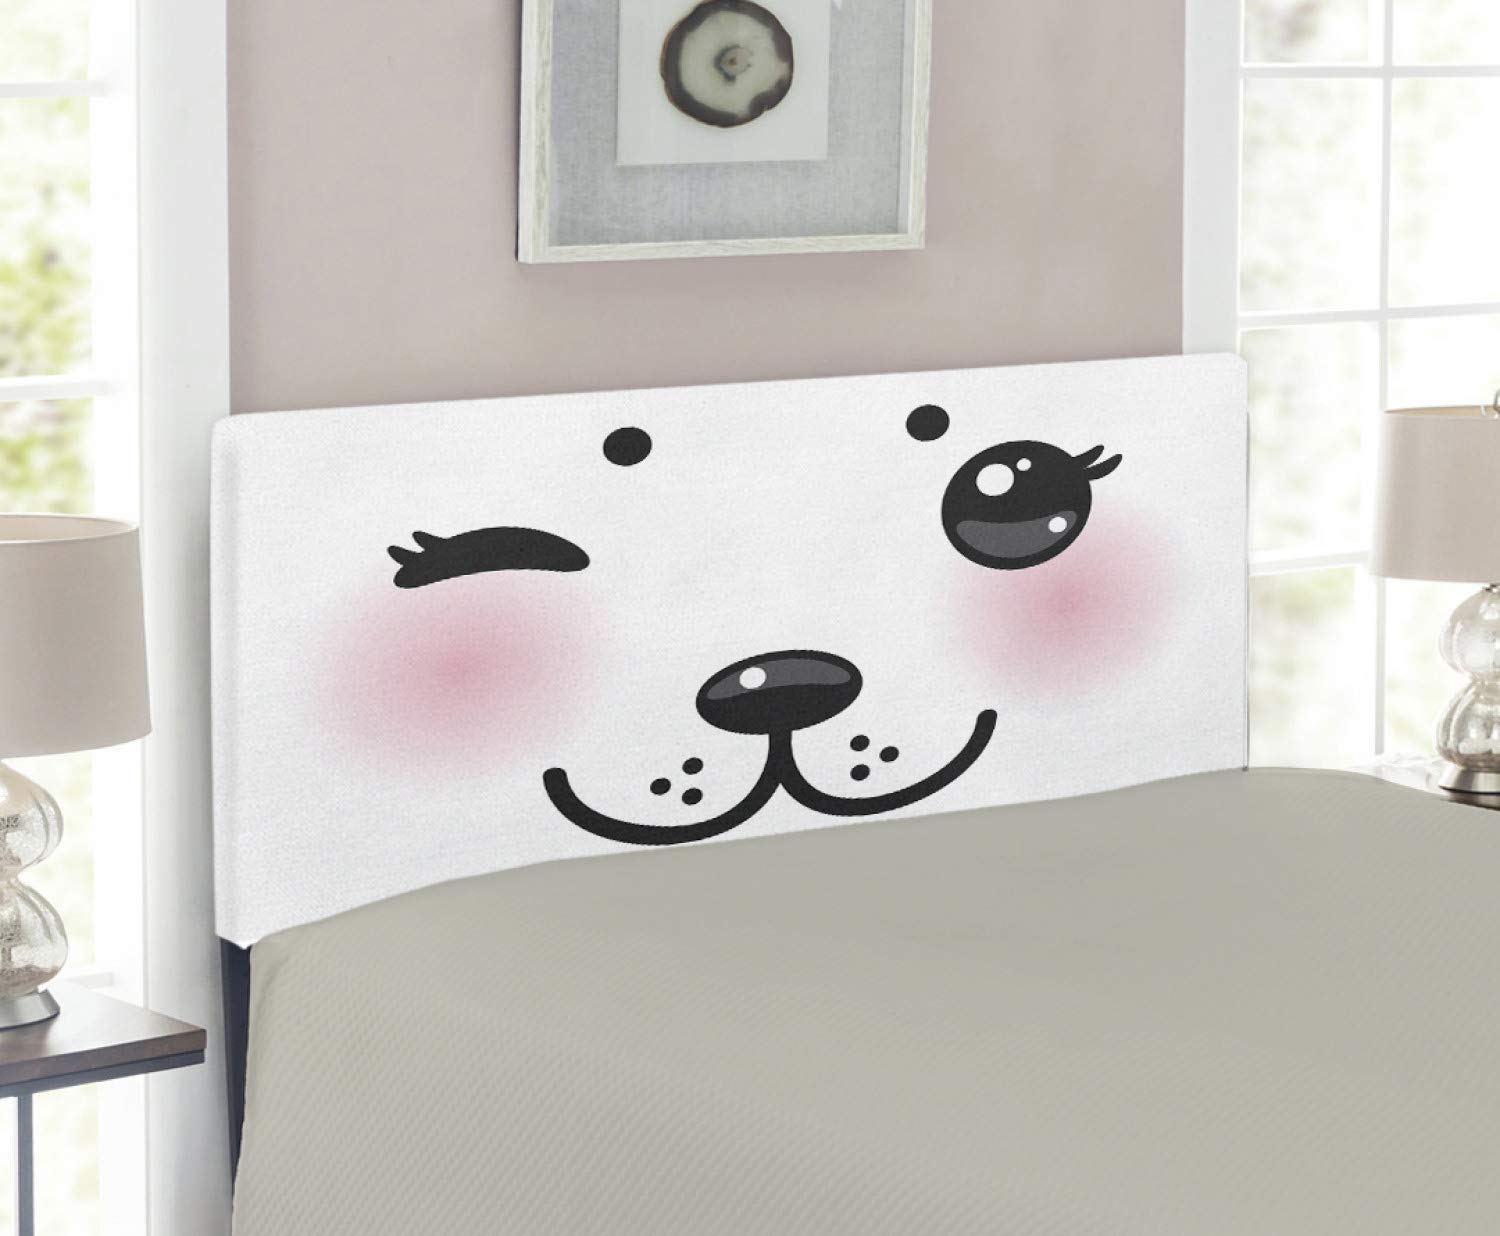 hot sale online ba808 daa31 Amazon.com - Lunarable Kawaii Headboard, Japanese Anime Dog ...